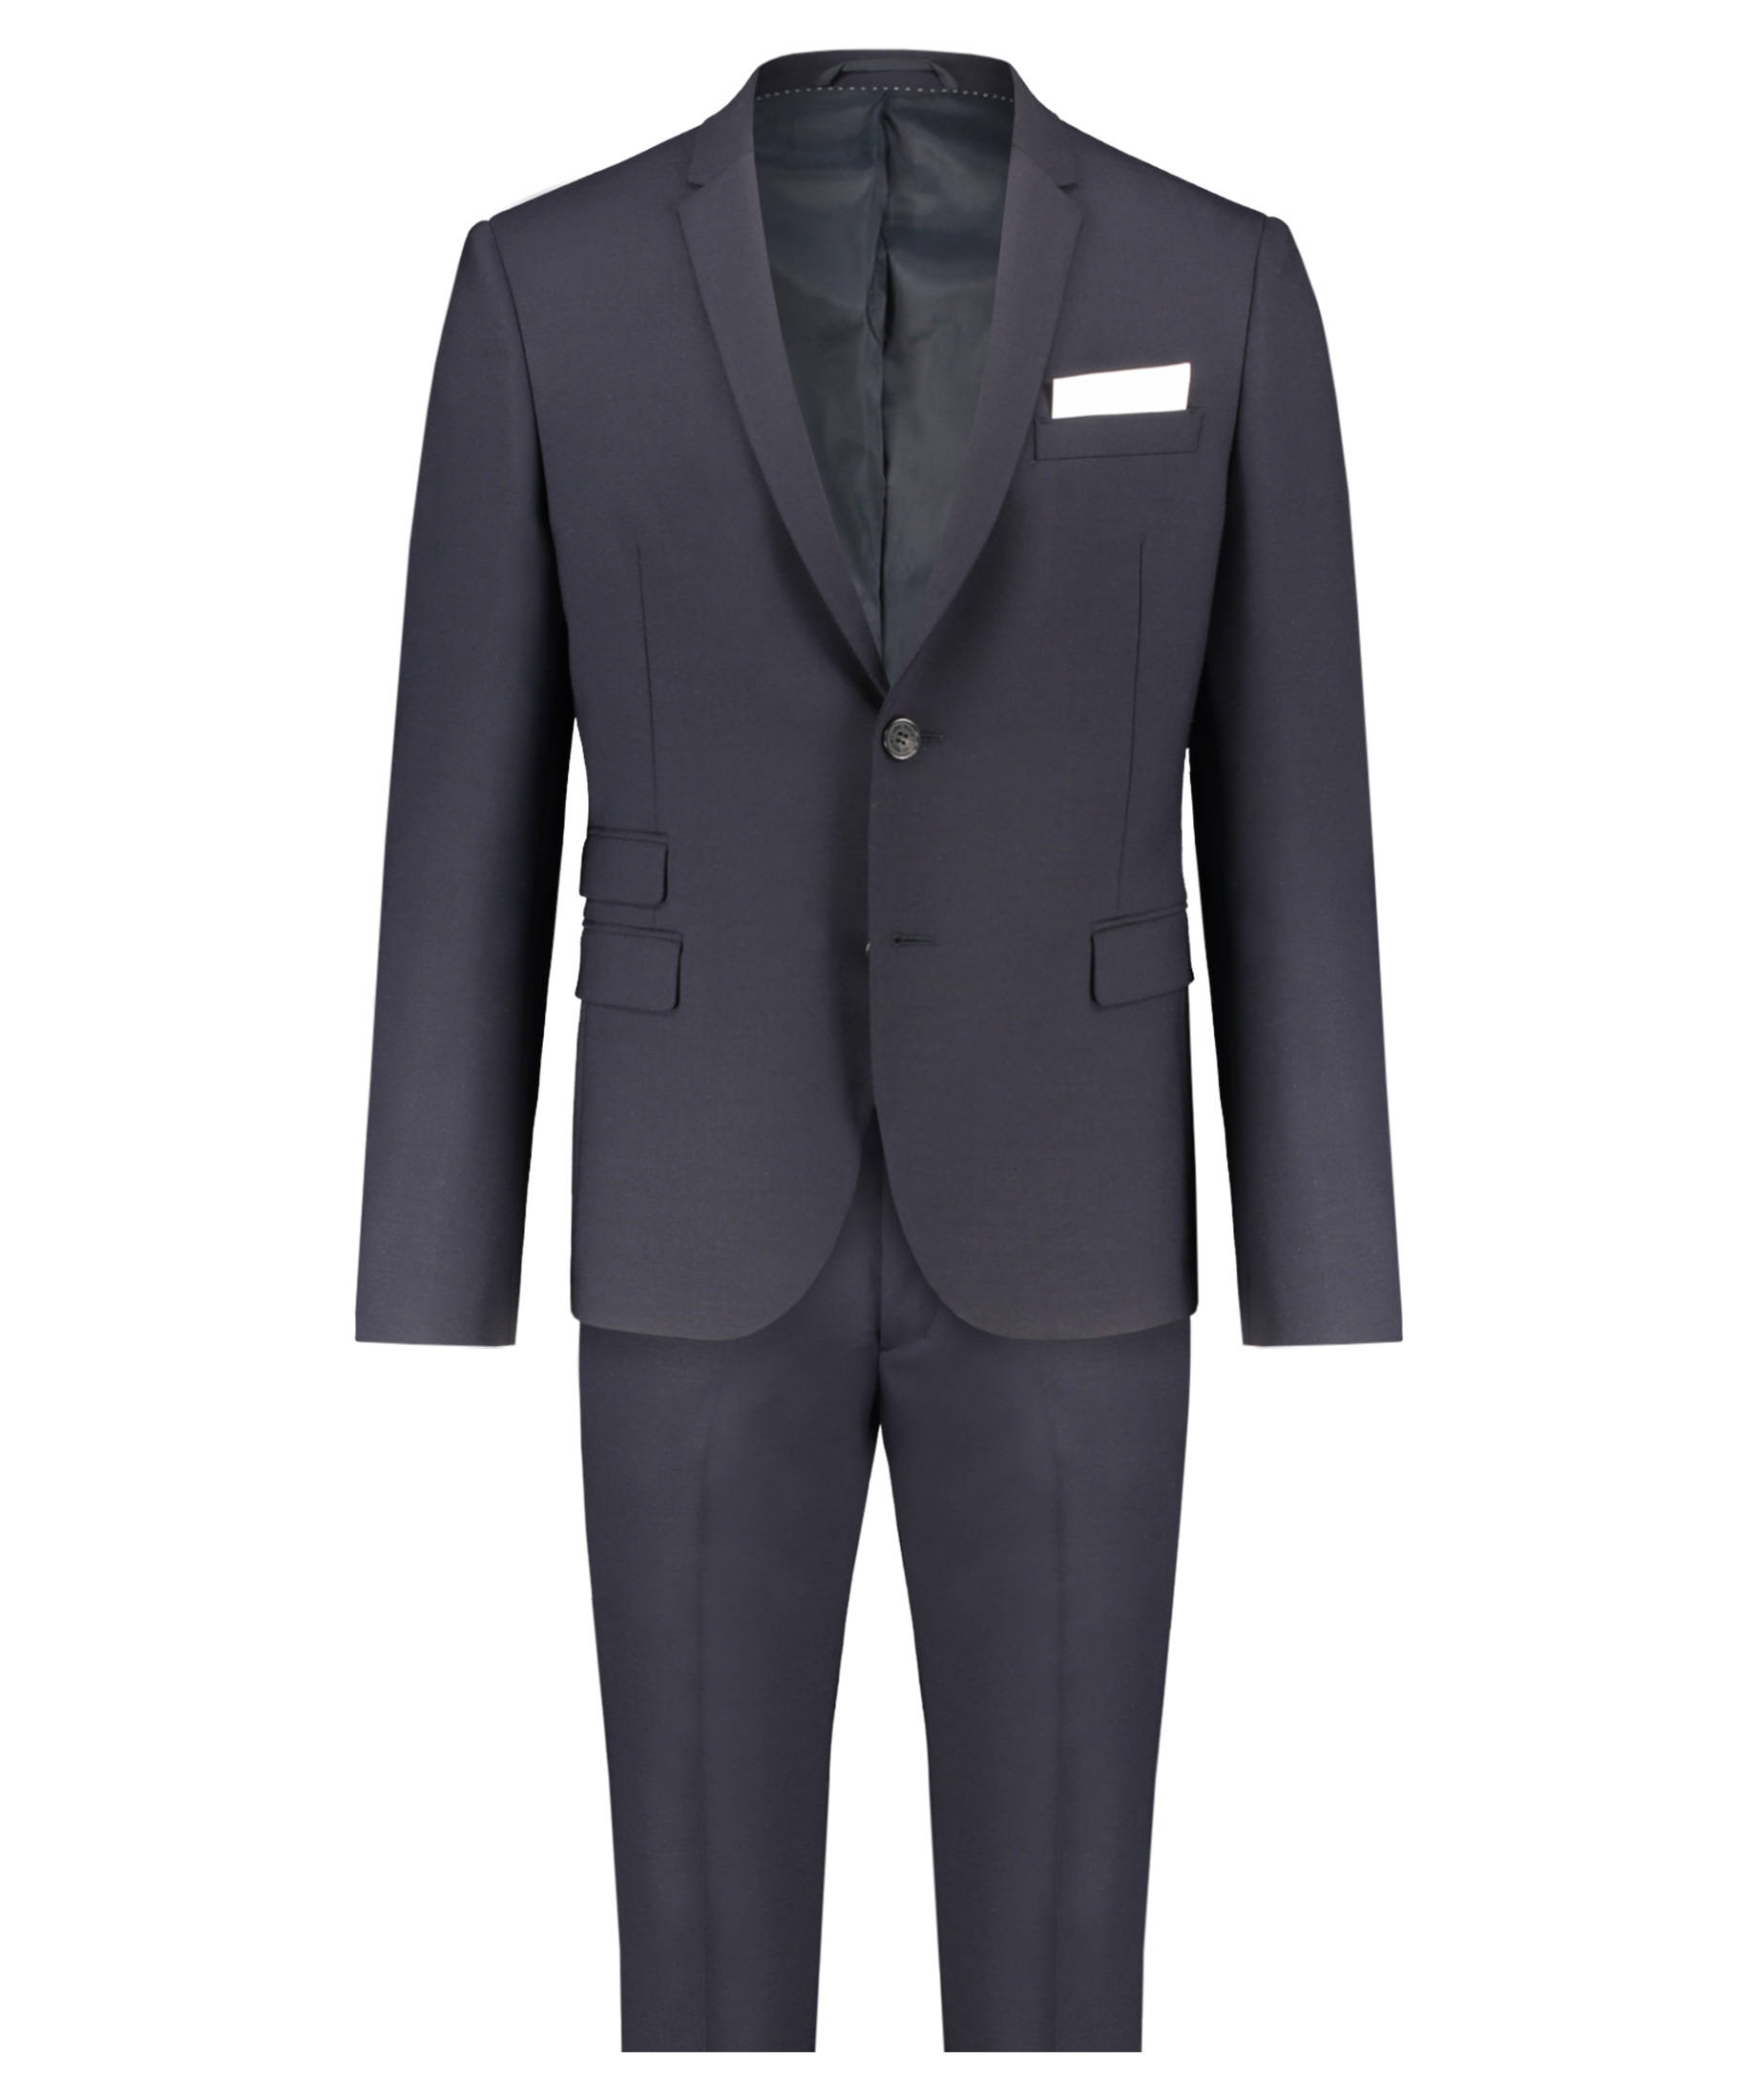 official photos debf8 56e9a Herren Anzug Slim Fit zweiteilig